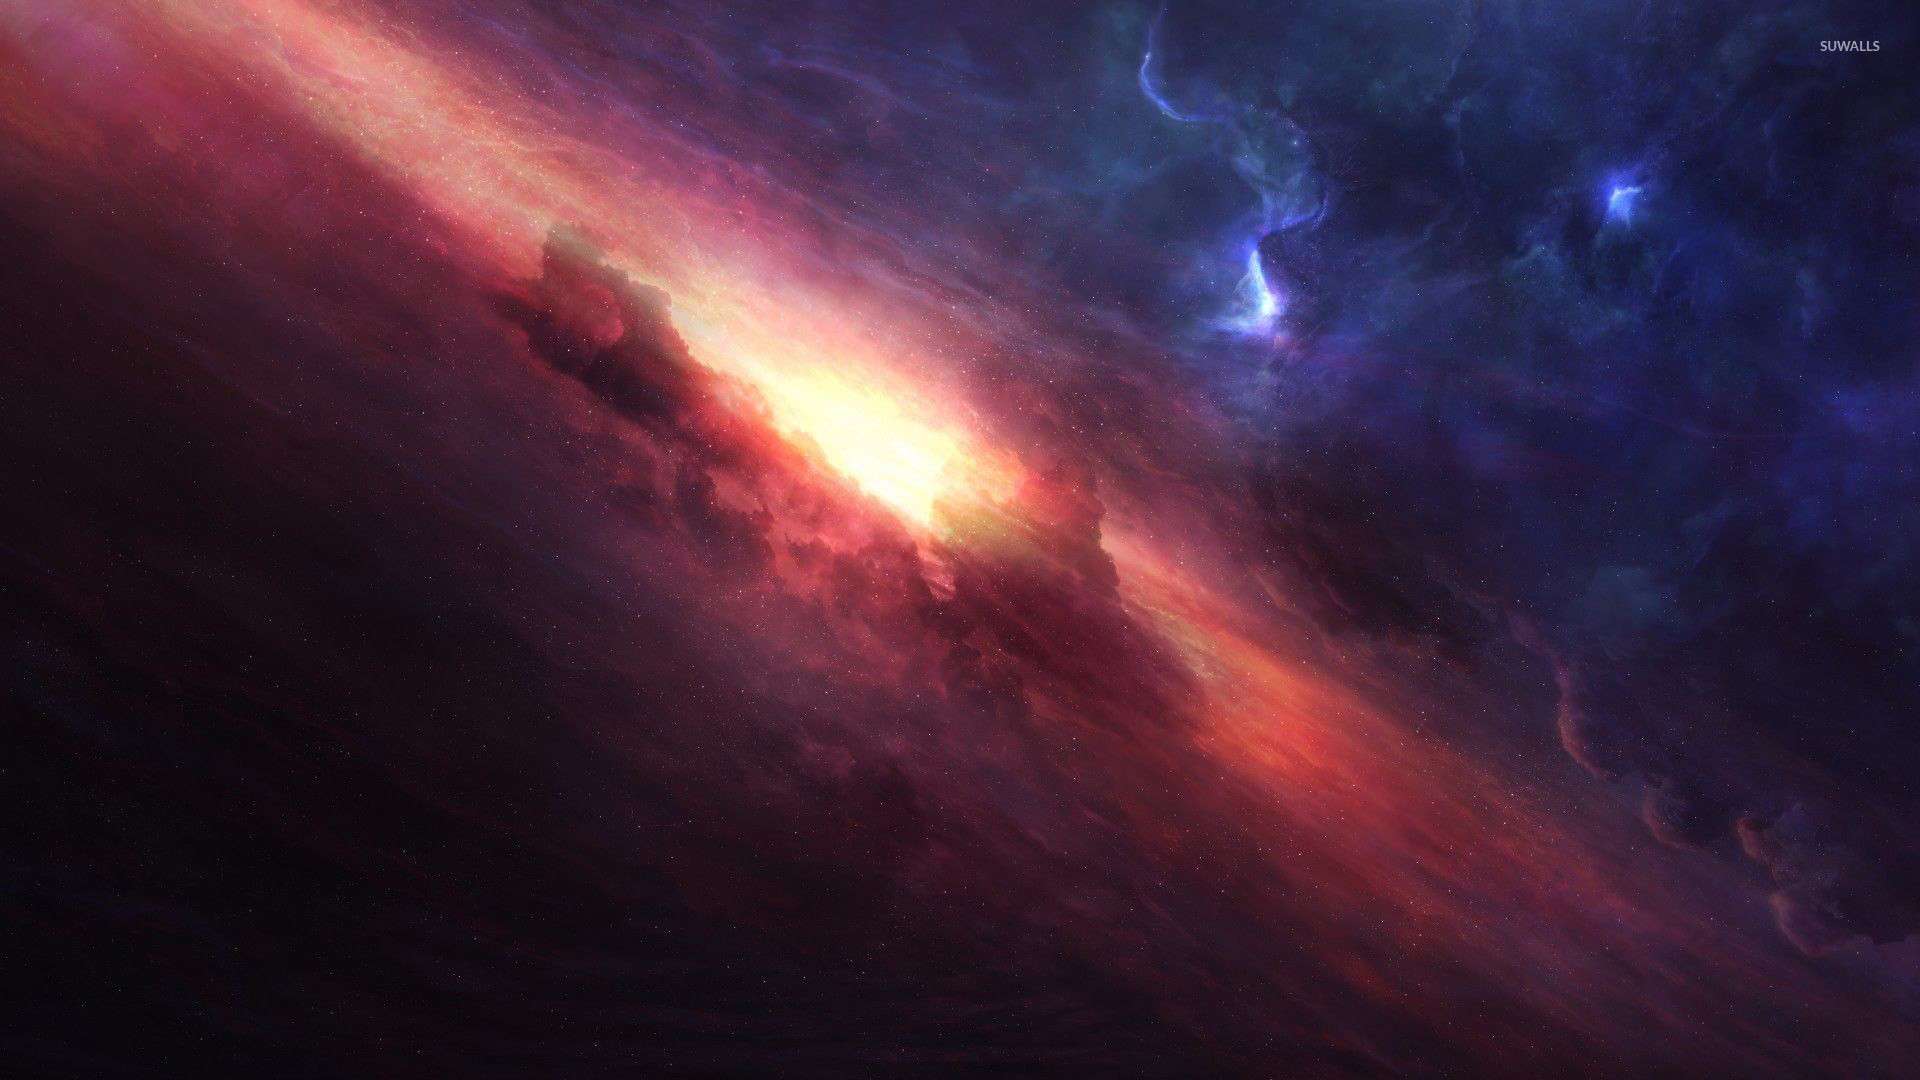 Golden light in the middle of the red nebula wallpaper